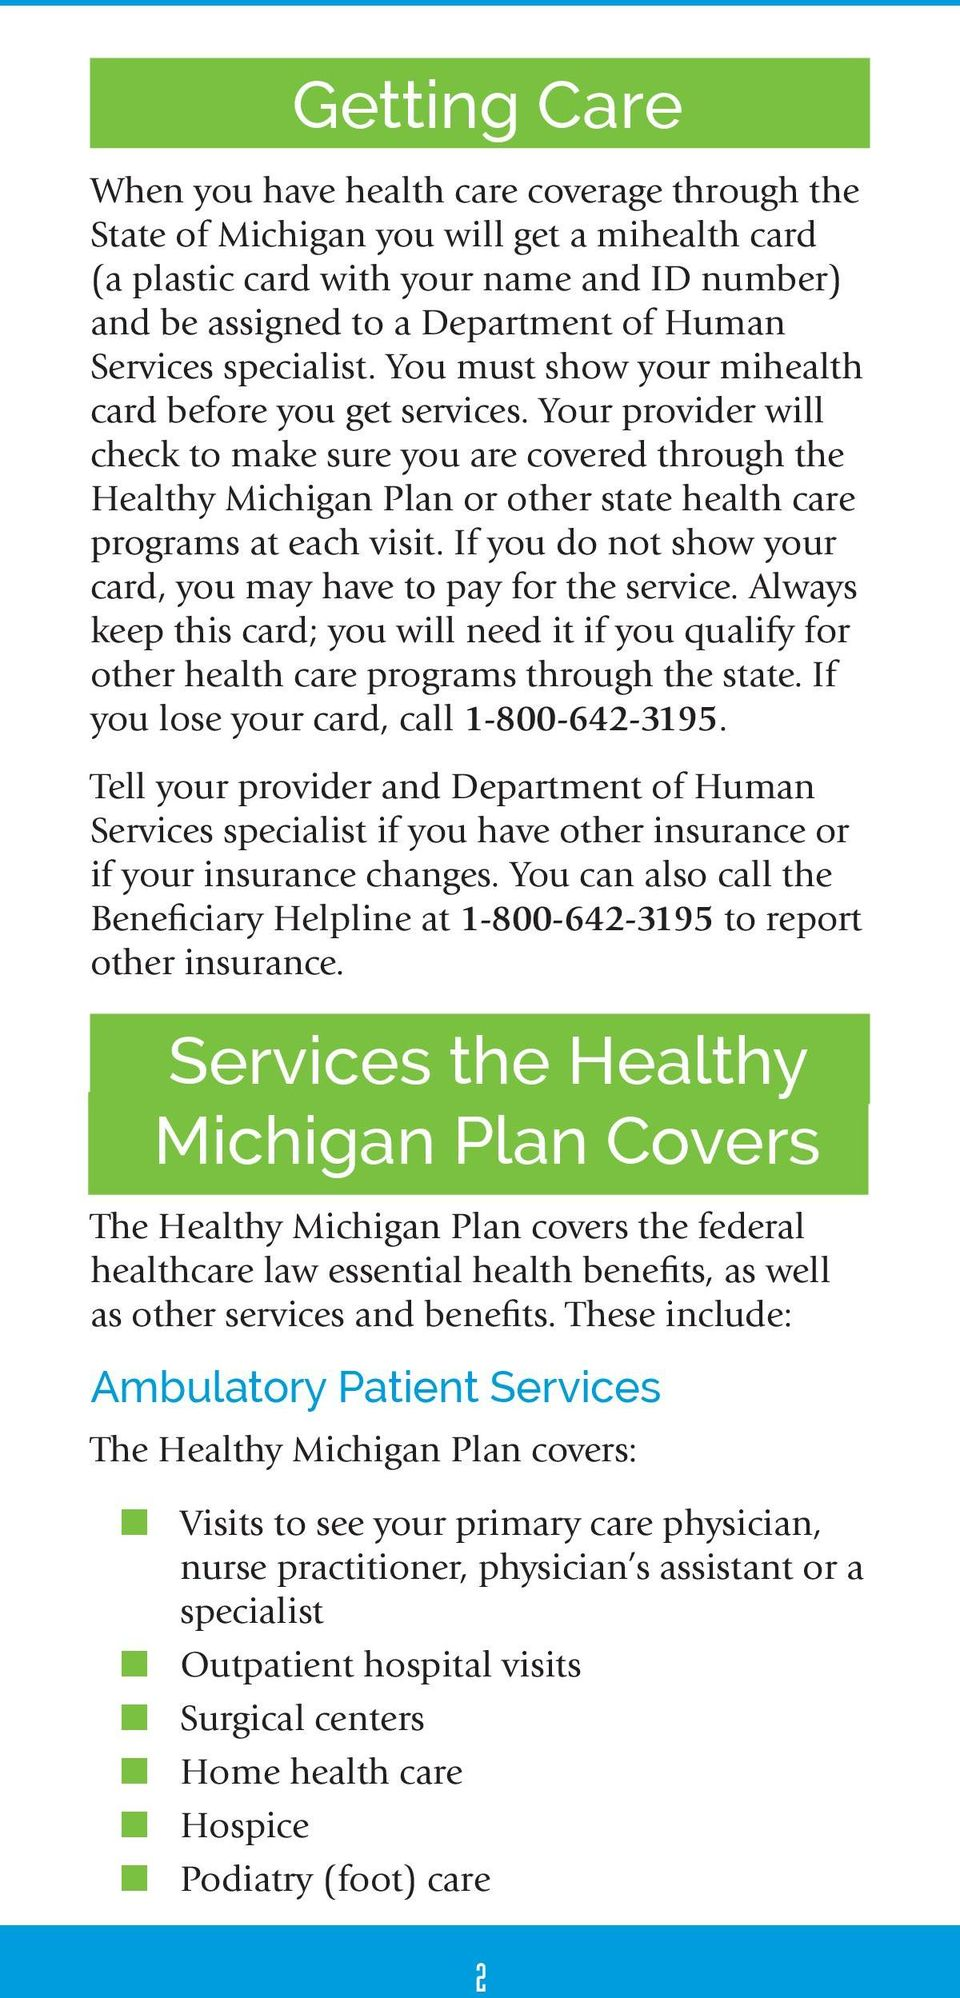 Your provider will check to make sure you are covered through the Healthy Michigan Plan or other state health care programs at each visit.